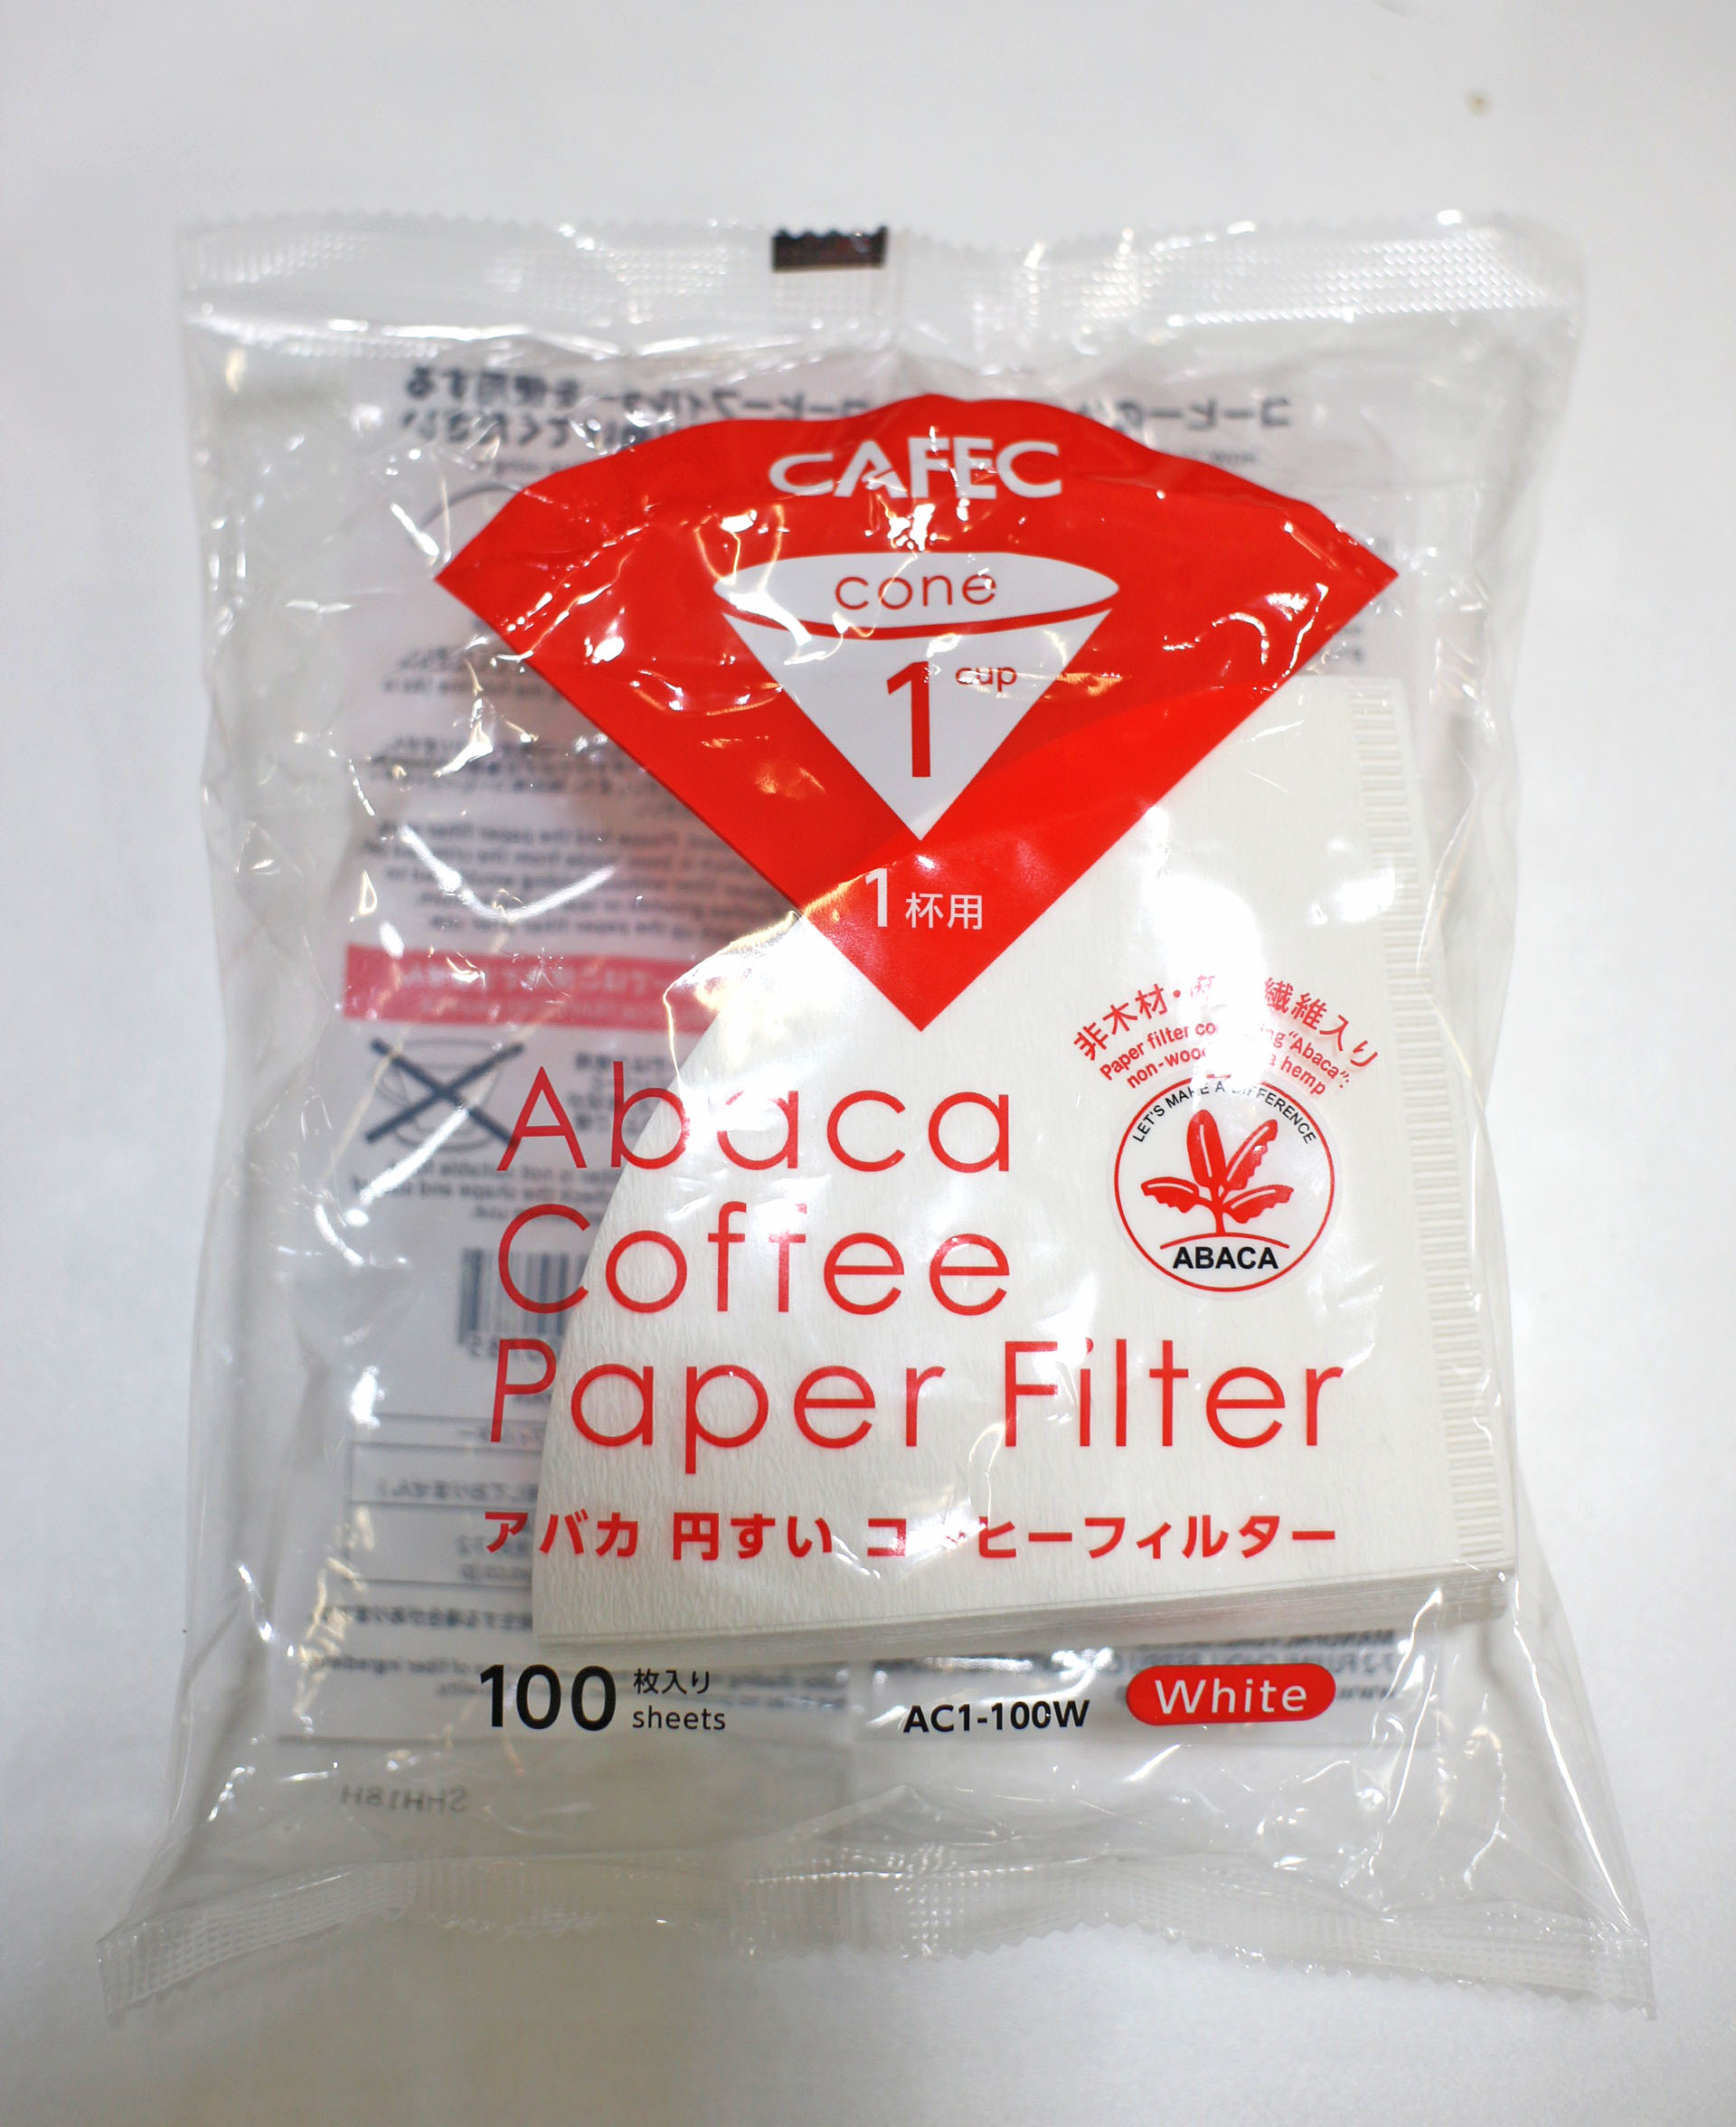 CAFEC Abaca paper Filter ;1 Cup